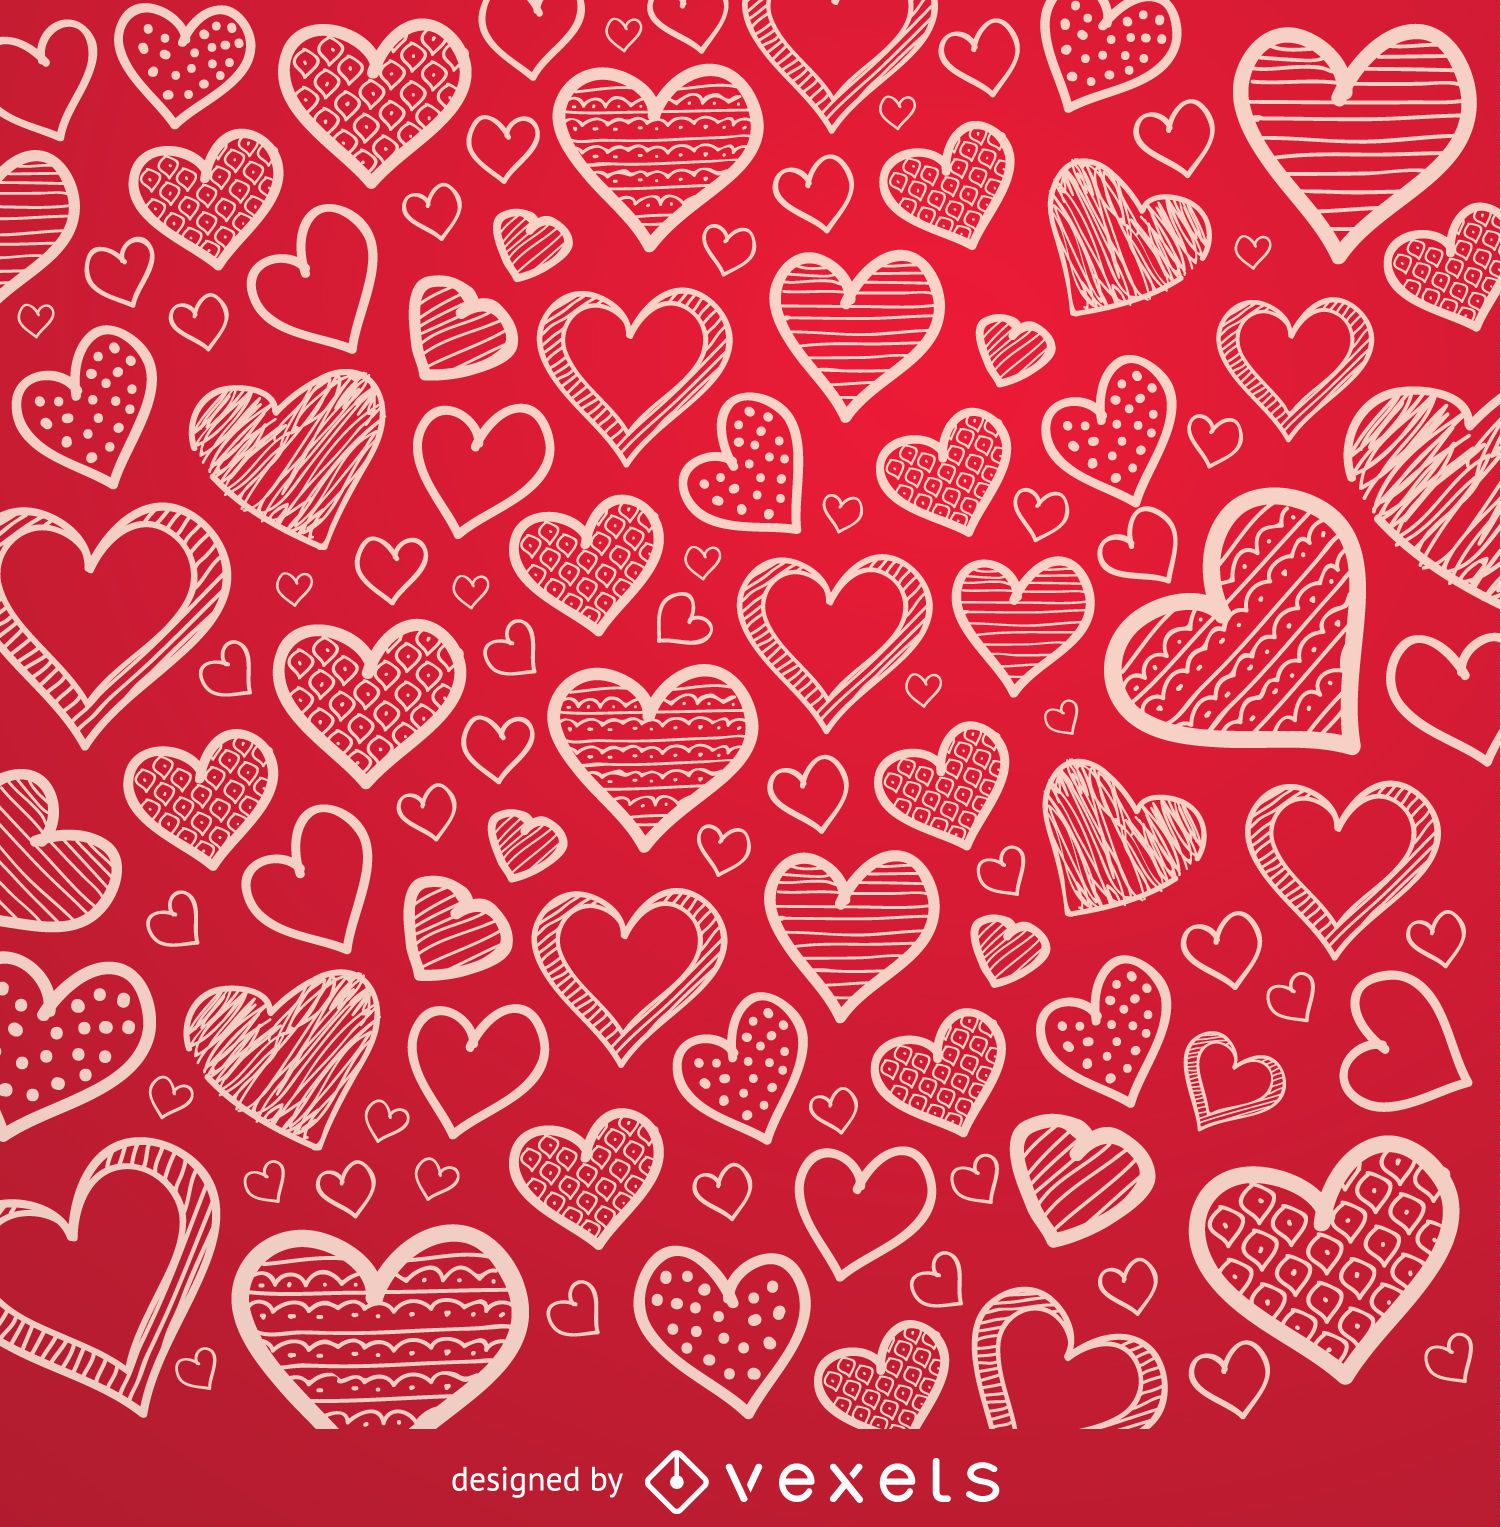 Red hearts hand drawn background